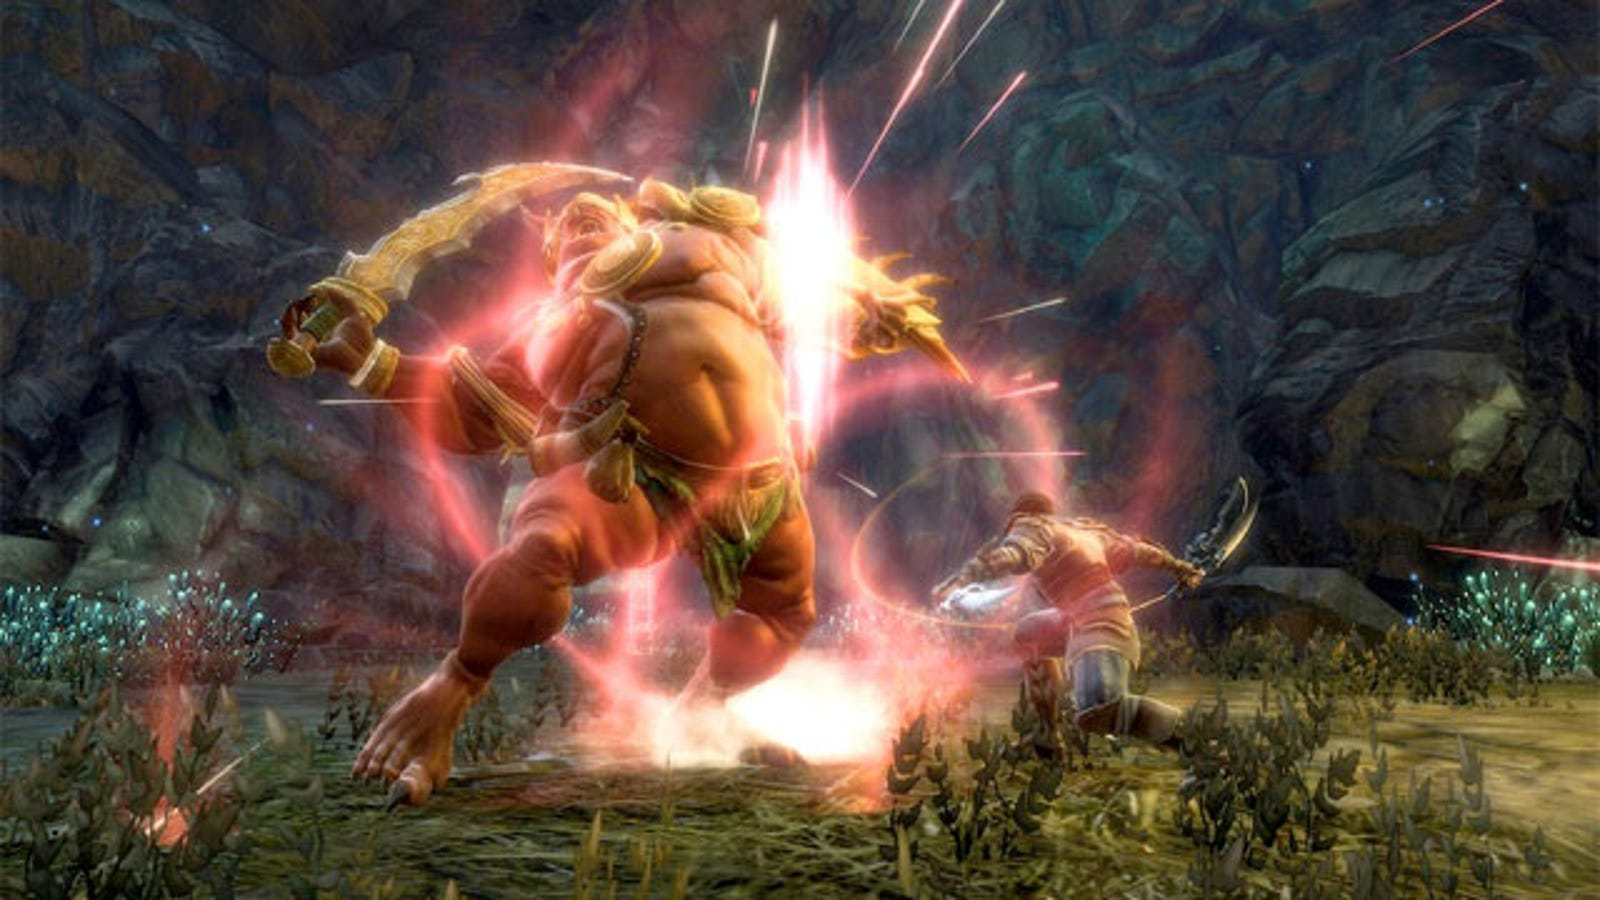 Kingdoms of Amalur: Reckoning Is A Dead RPG Revived With the